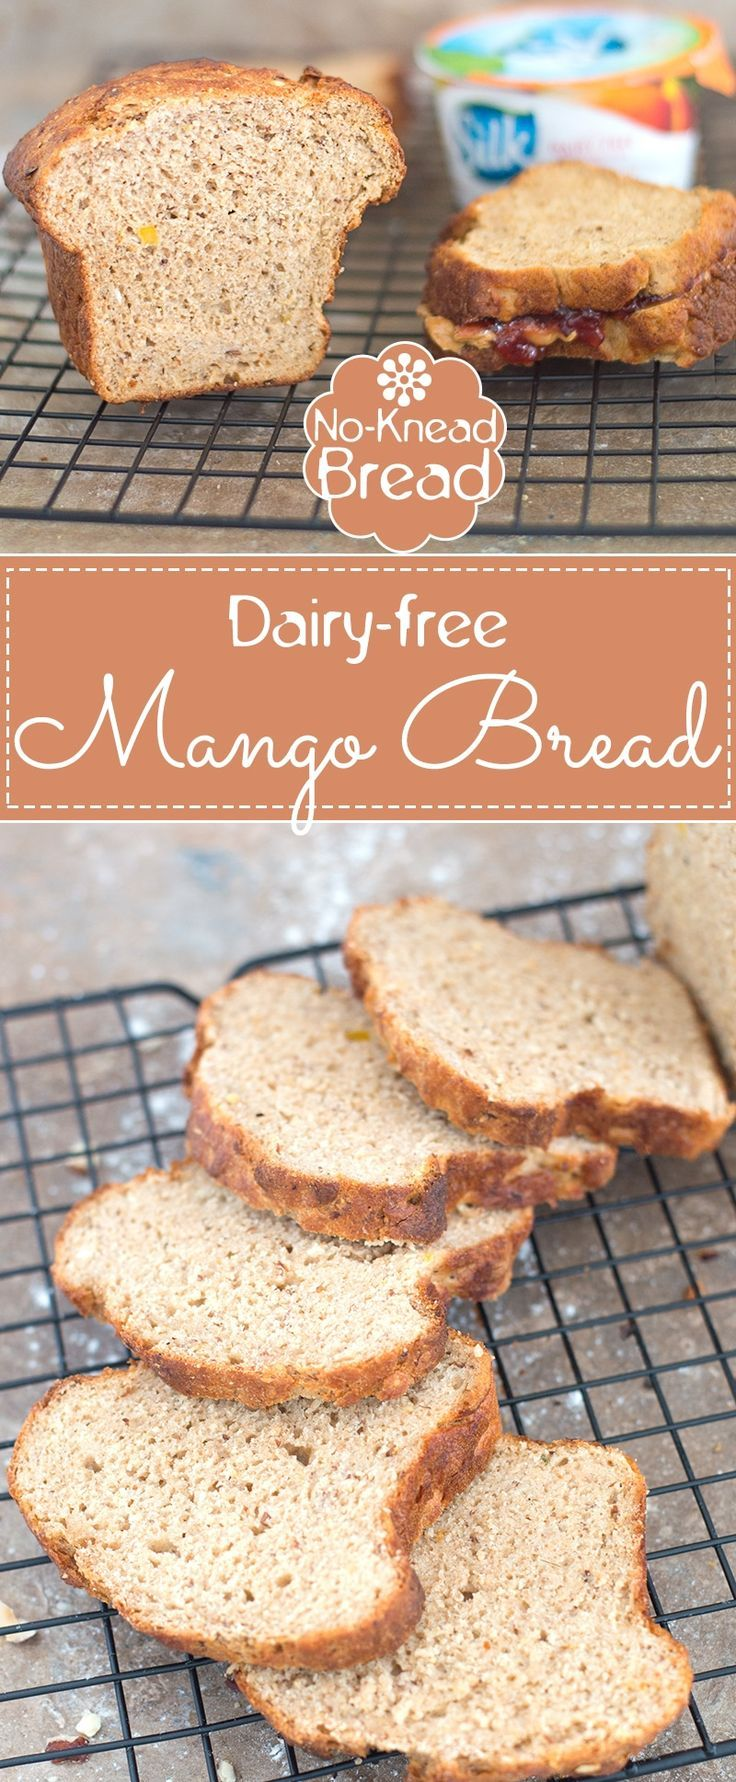 Whole Wheat Mango Bread is Very Easy to Make. Used Dairy Free Yogurt to make this Very Soft and Moist Bread. Turn Ripe Mangoes into Pulp and This Bread Will Have an Amazing Aroma | Dairy-free baking, dairy-free bread, no-knead bread, homemade bread, whole wheat recipes #ad #DairyFreeGoodness